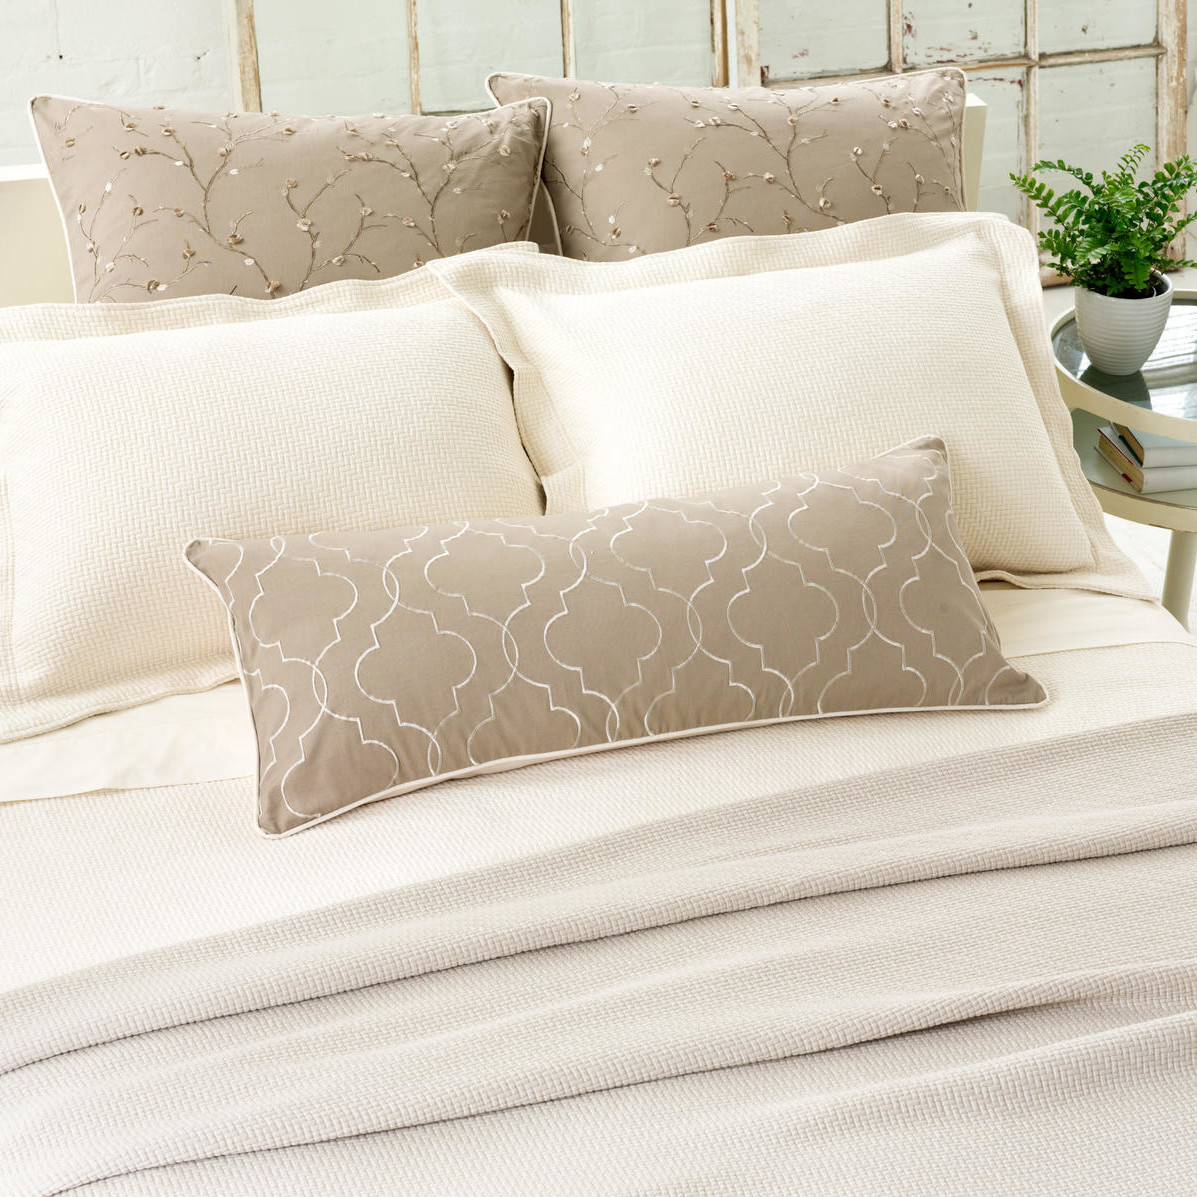 Lovely Pine Cone Hill Bedding For Interesting Bed Ideas: Chic Pine Cone Hill Interlaken Matelasse Coverlet In White And Tan With Floral Pattern For Bed Ideas